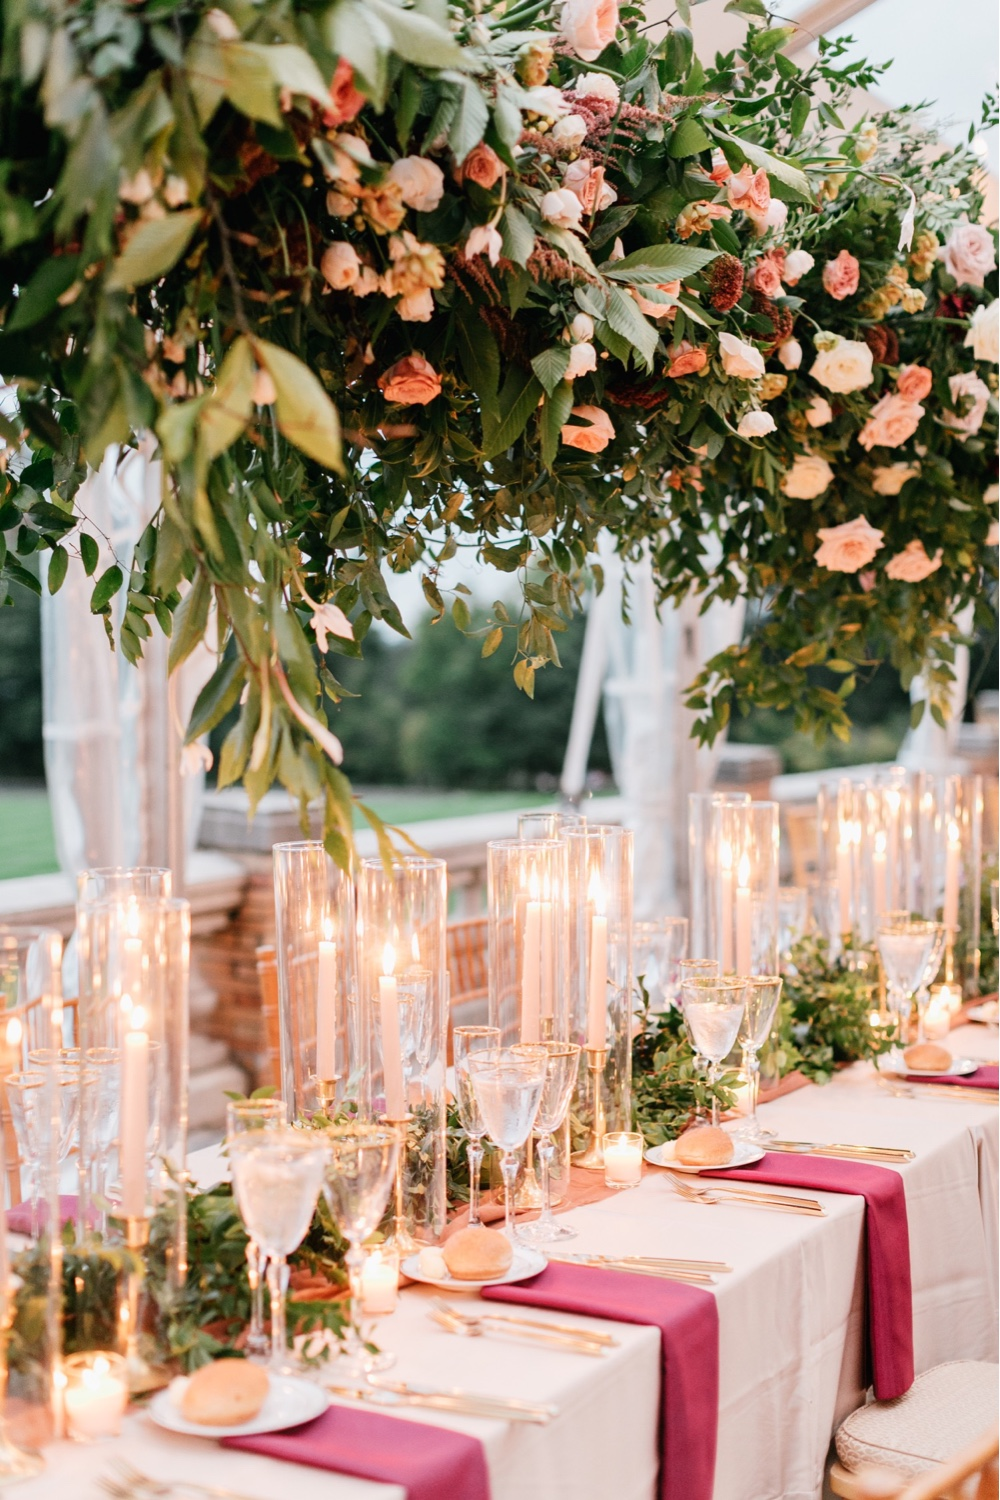 167 Whimsical Wedding Flowers Suspension Wedding Table Cairnwood Estate Wedding Cairnwood Estate